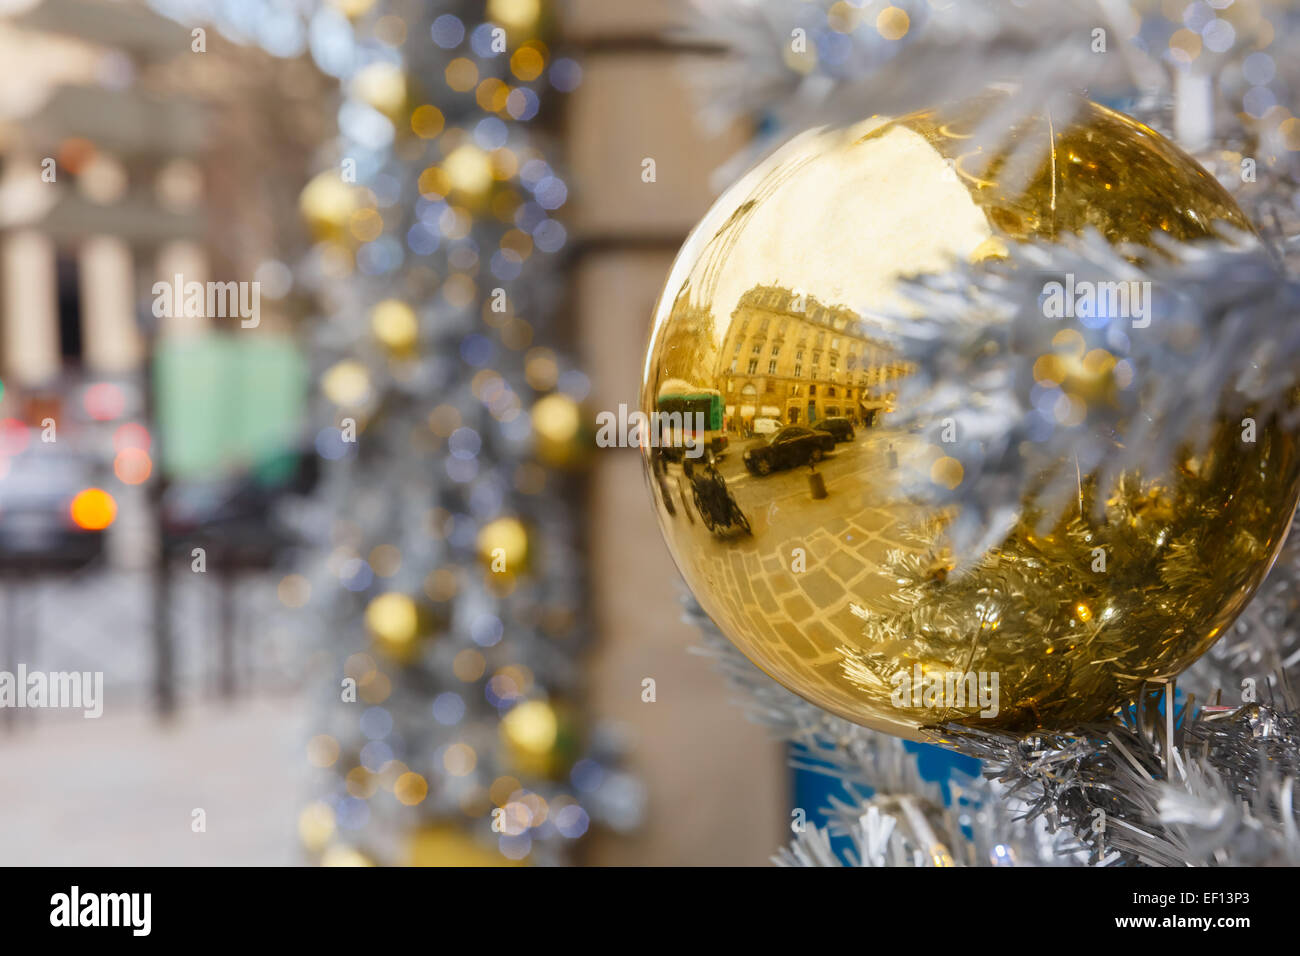 Golden shiny ball on Christmas decorated street in Paris, France - Stock Image